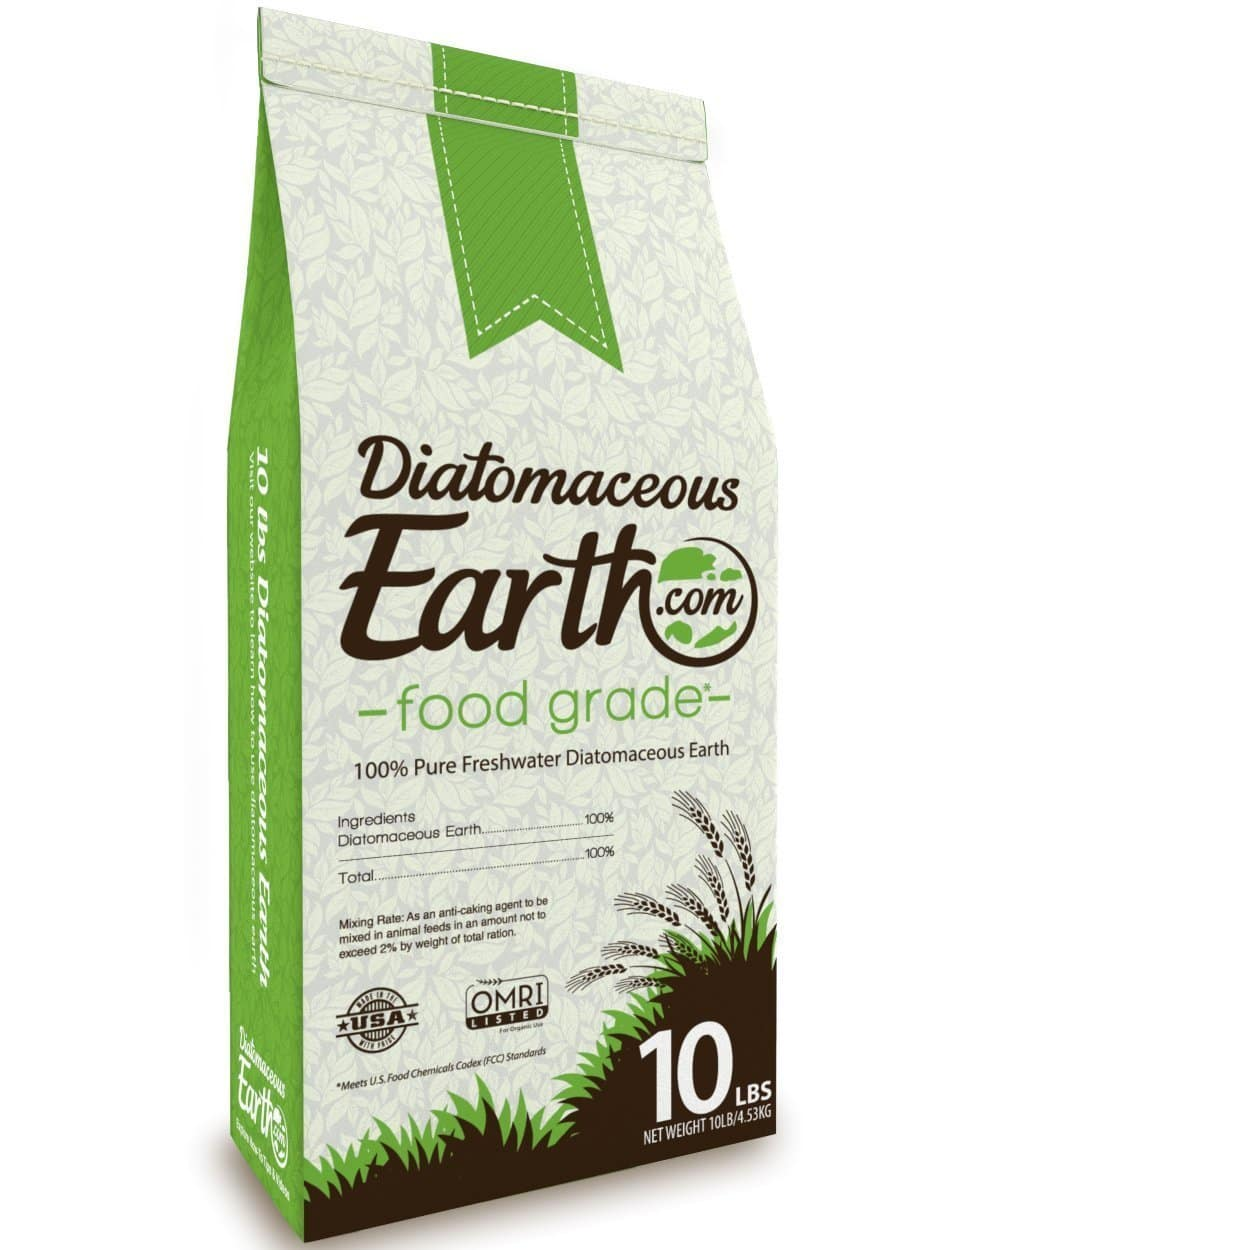 Amazon Deal of the Day - 25% Off Diatomaceous Earth Food Grade 10 Lb ($15.95)